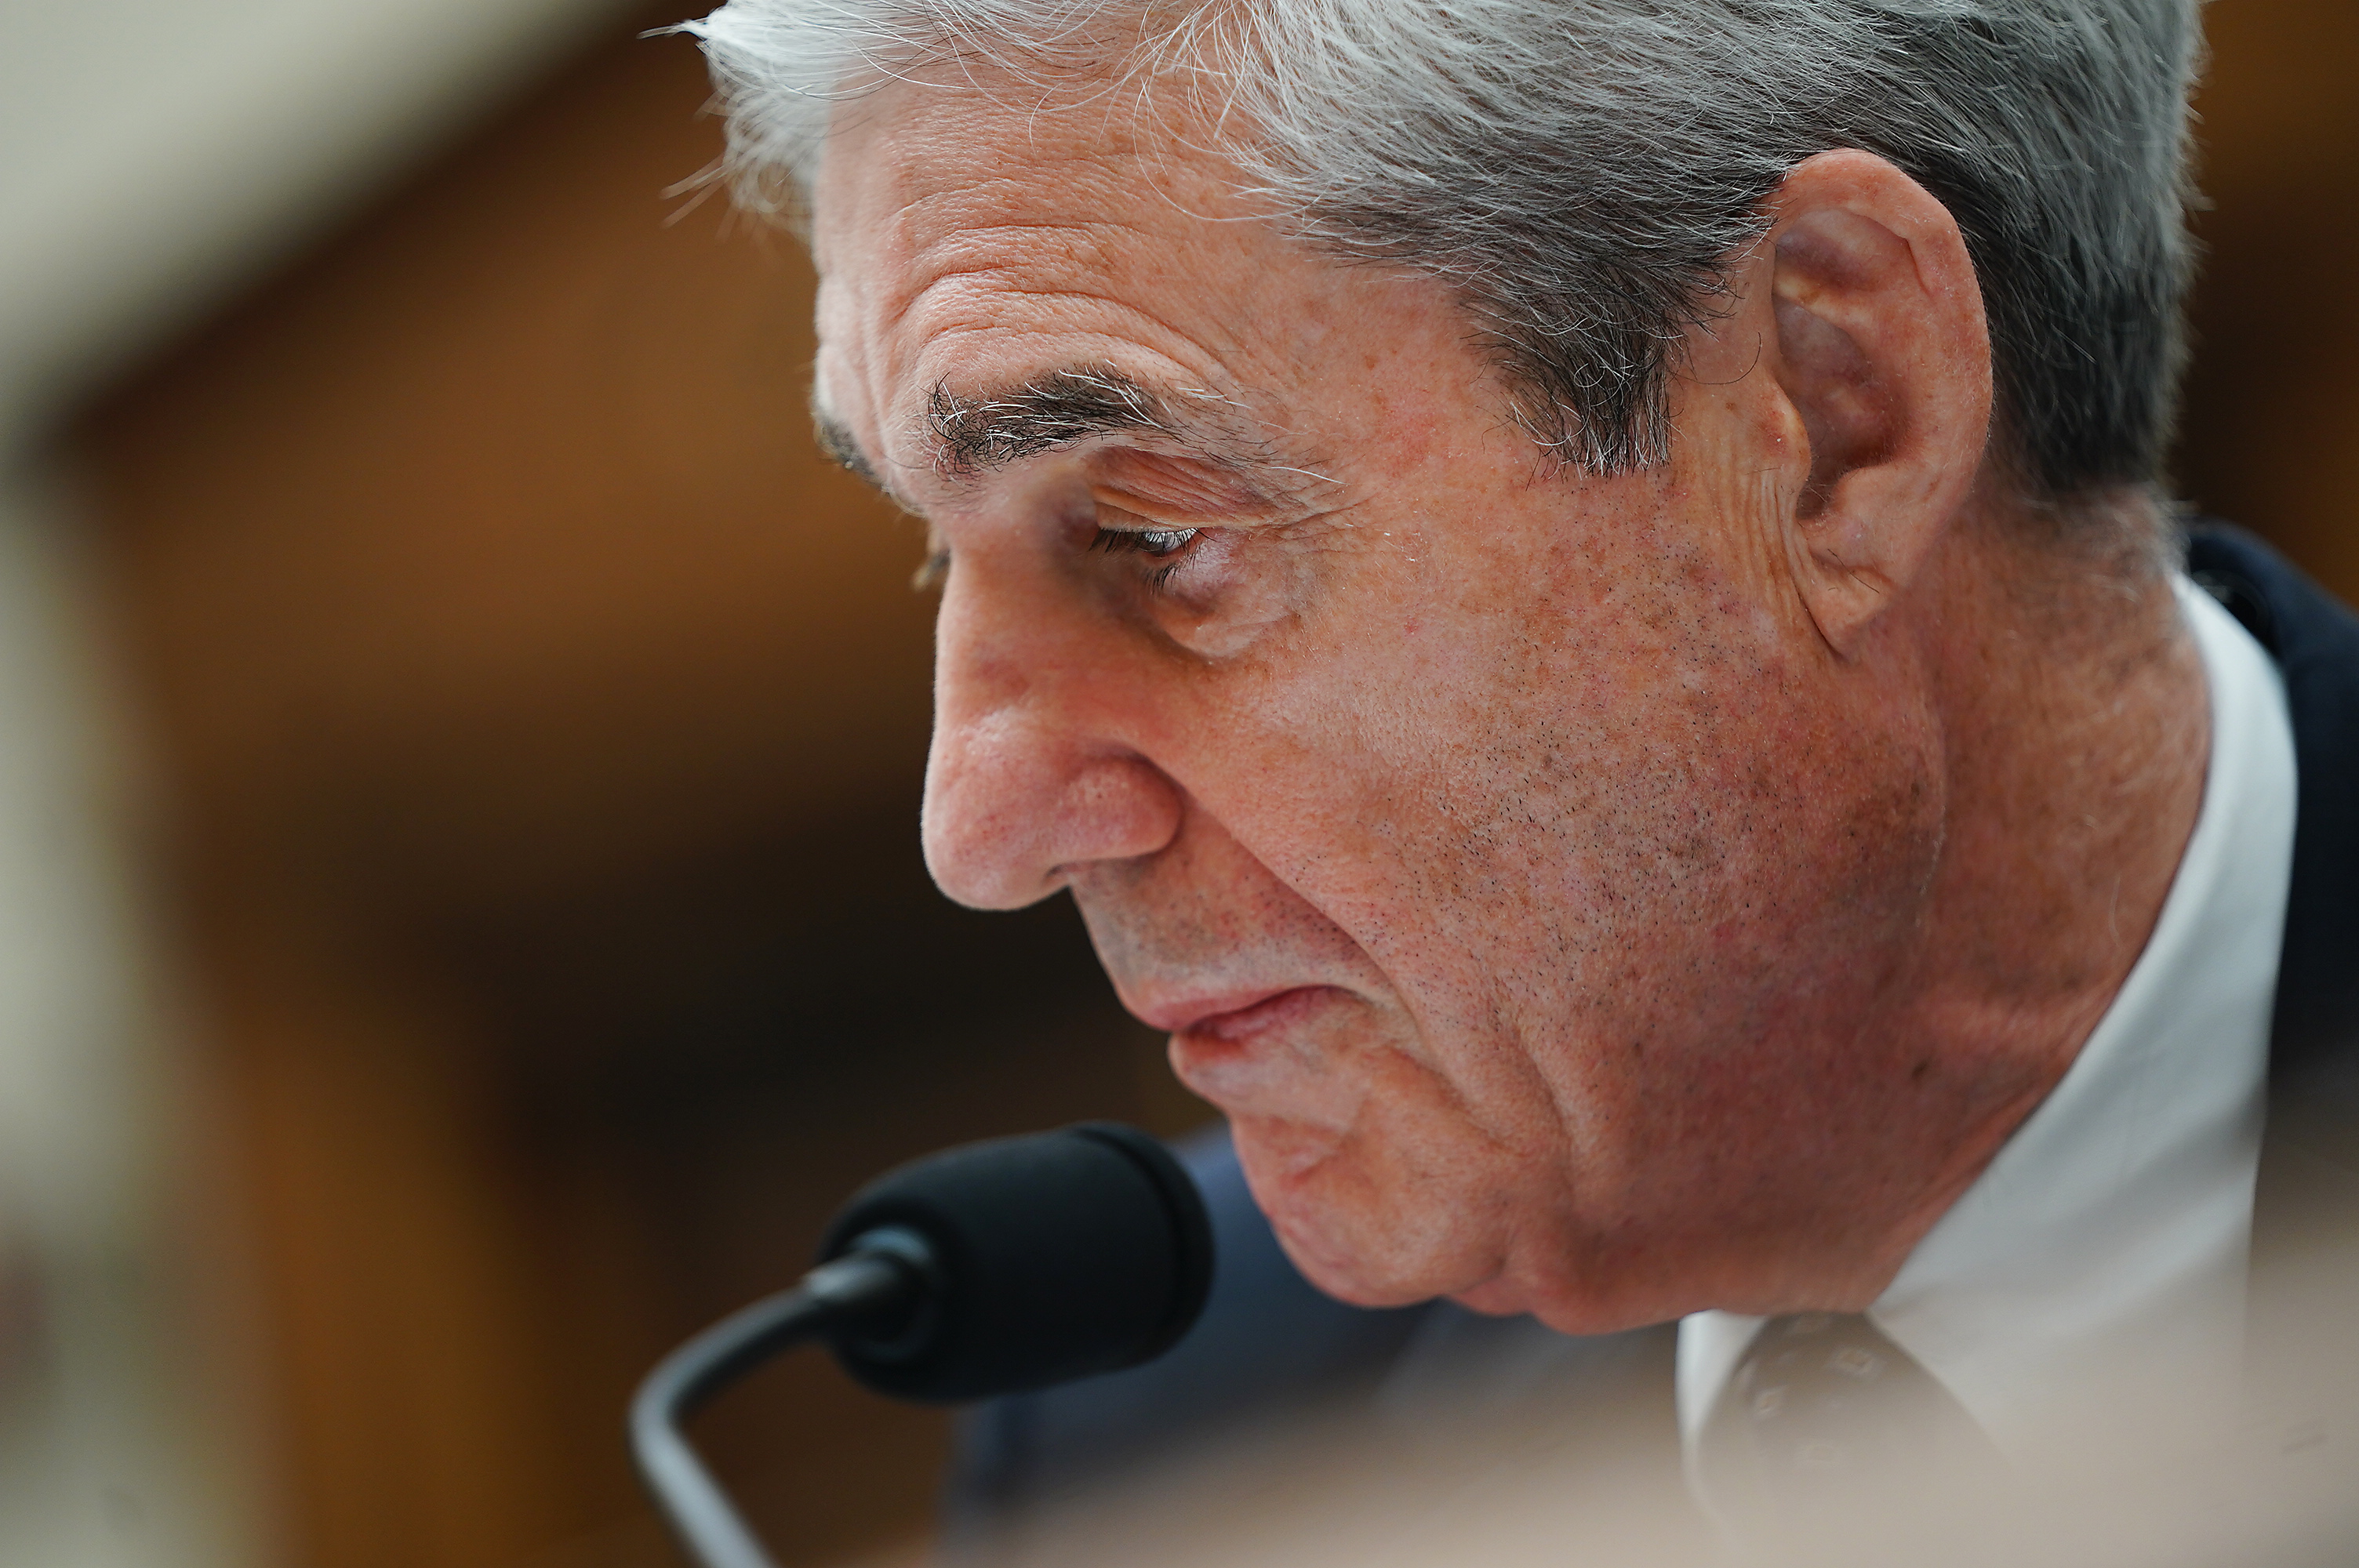 Former Special Counsel Mueller Testifies Before Congress On Investigation Into Russian 2016 Presidential Election